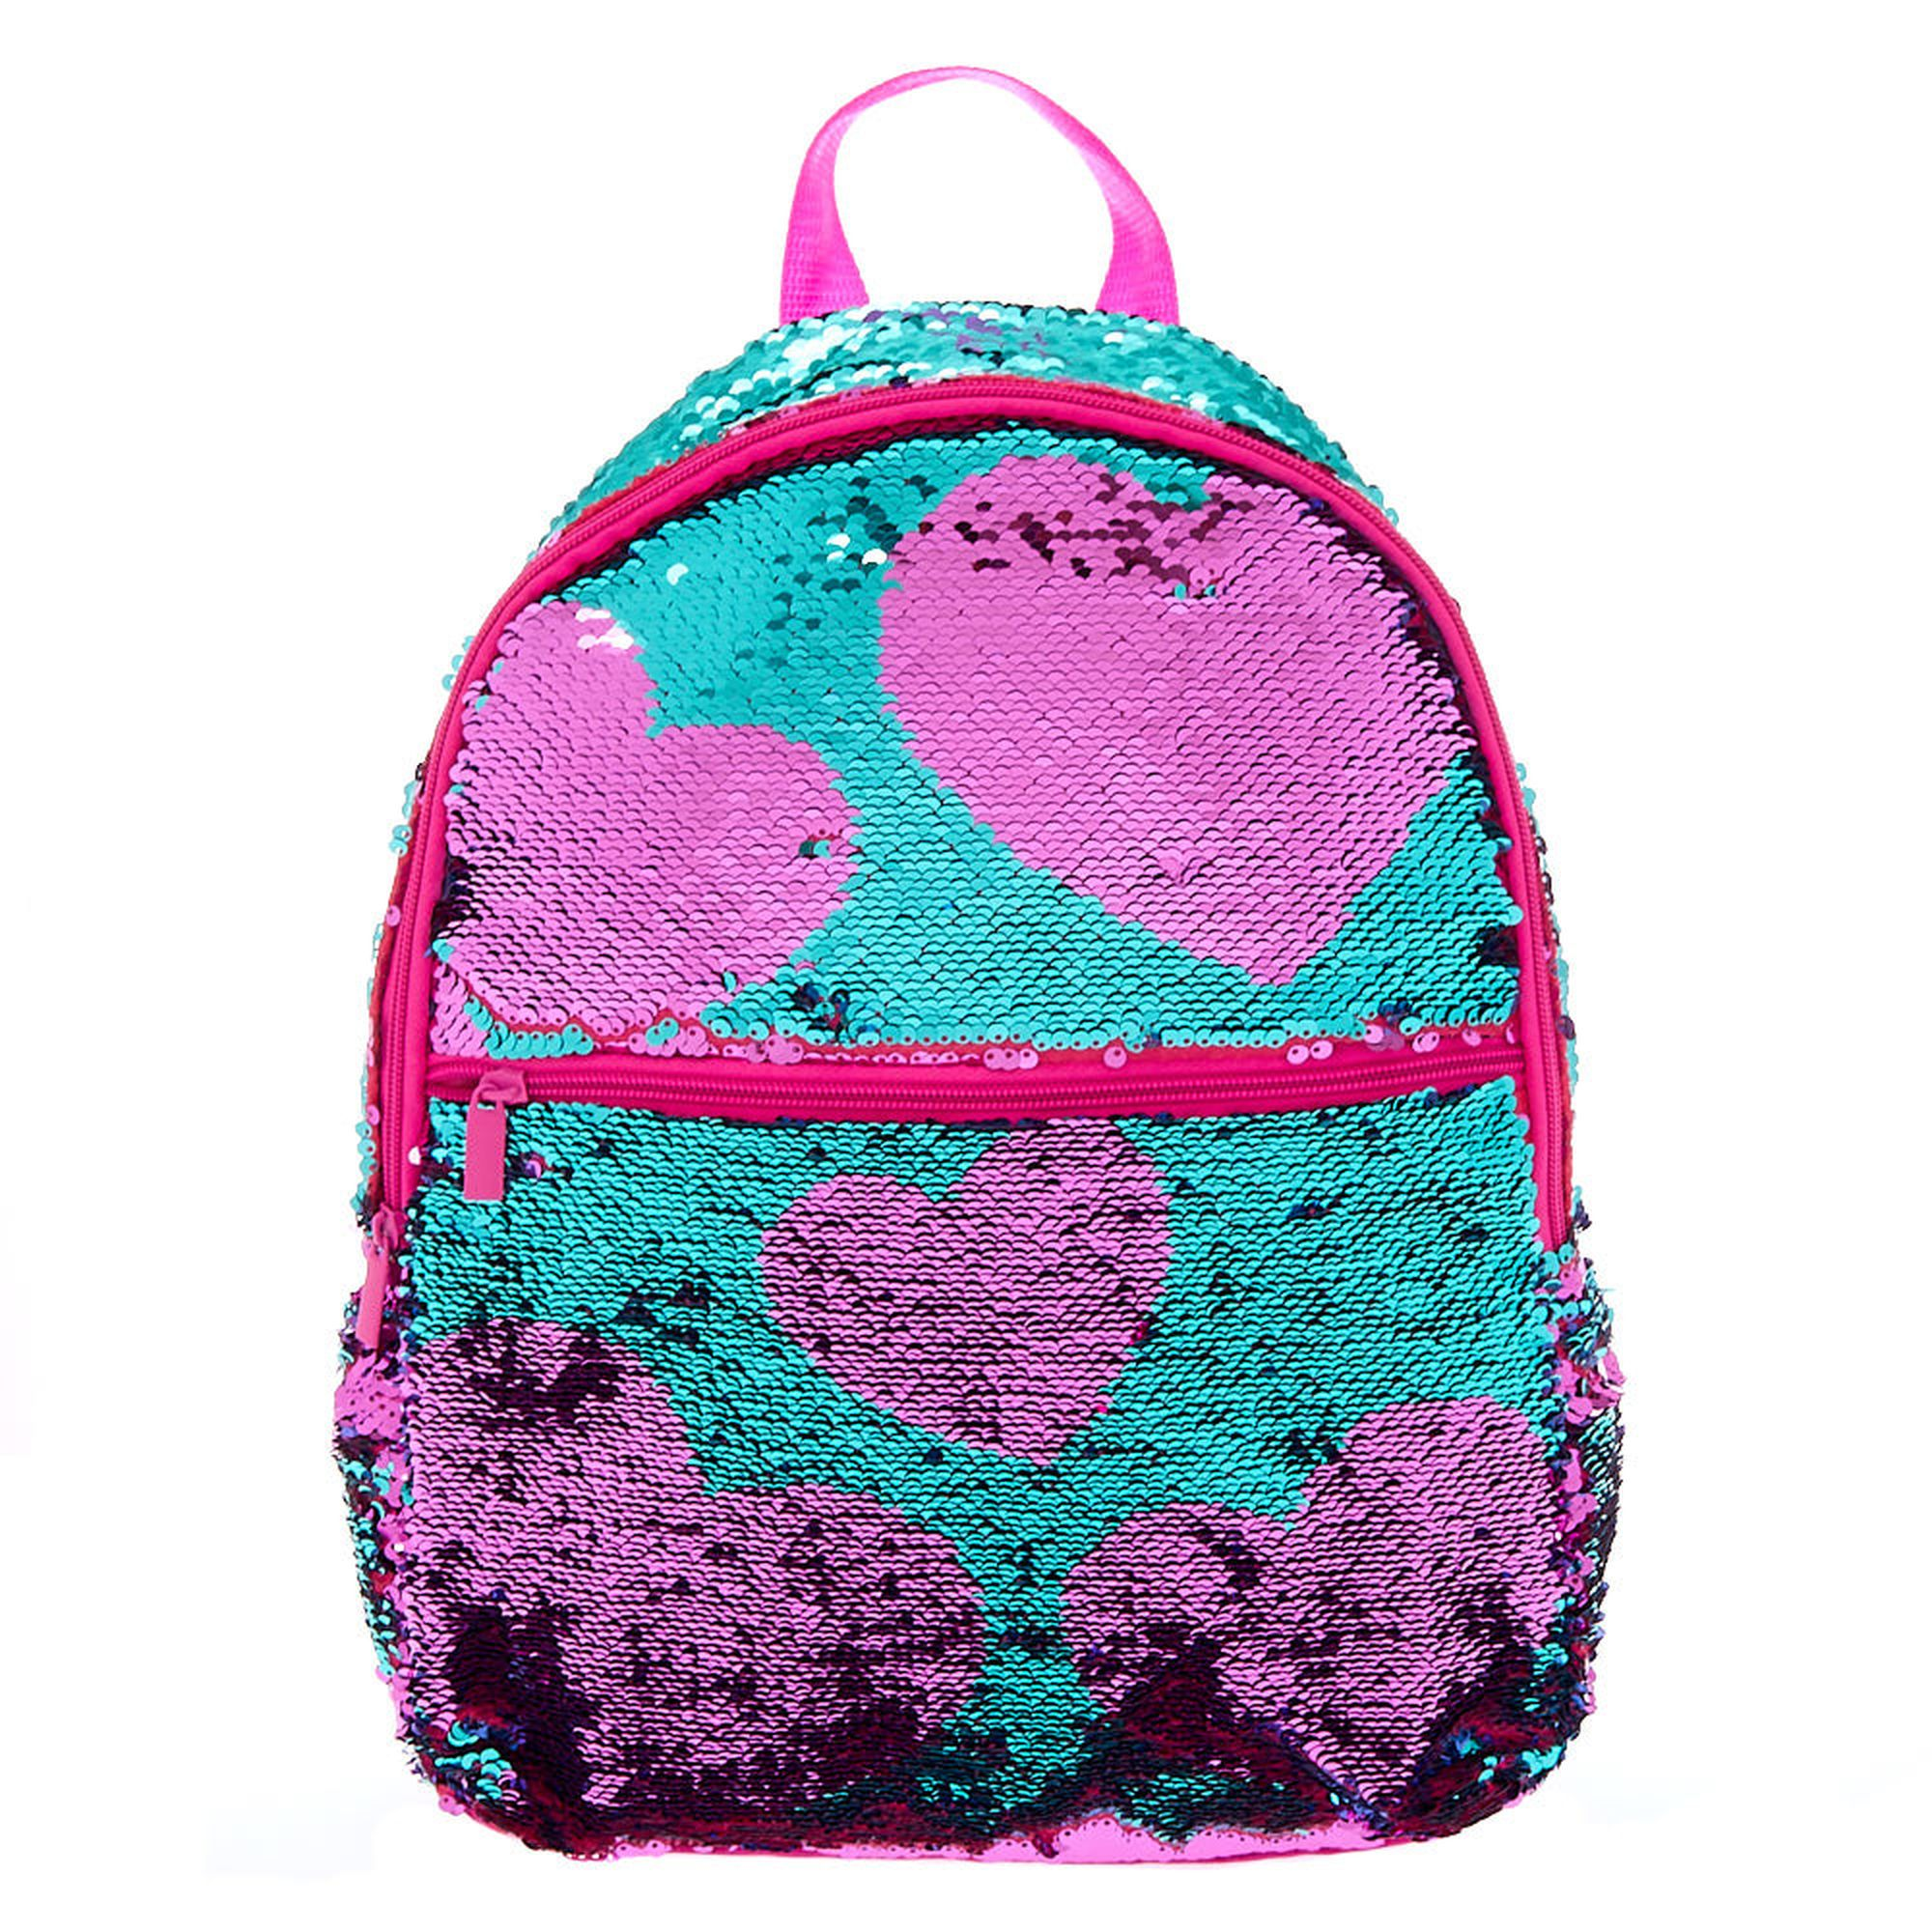 8bf49d21ea Reversible Sequin Heart Backpack - Fuchsia